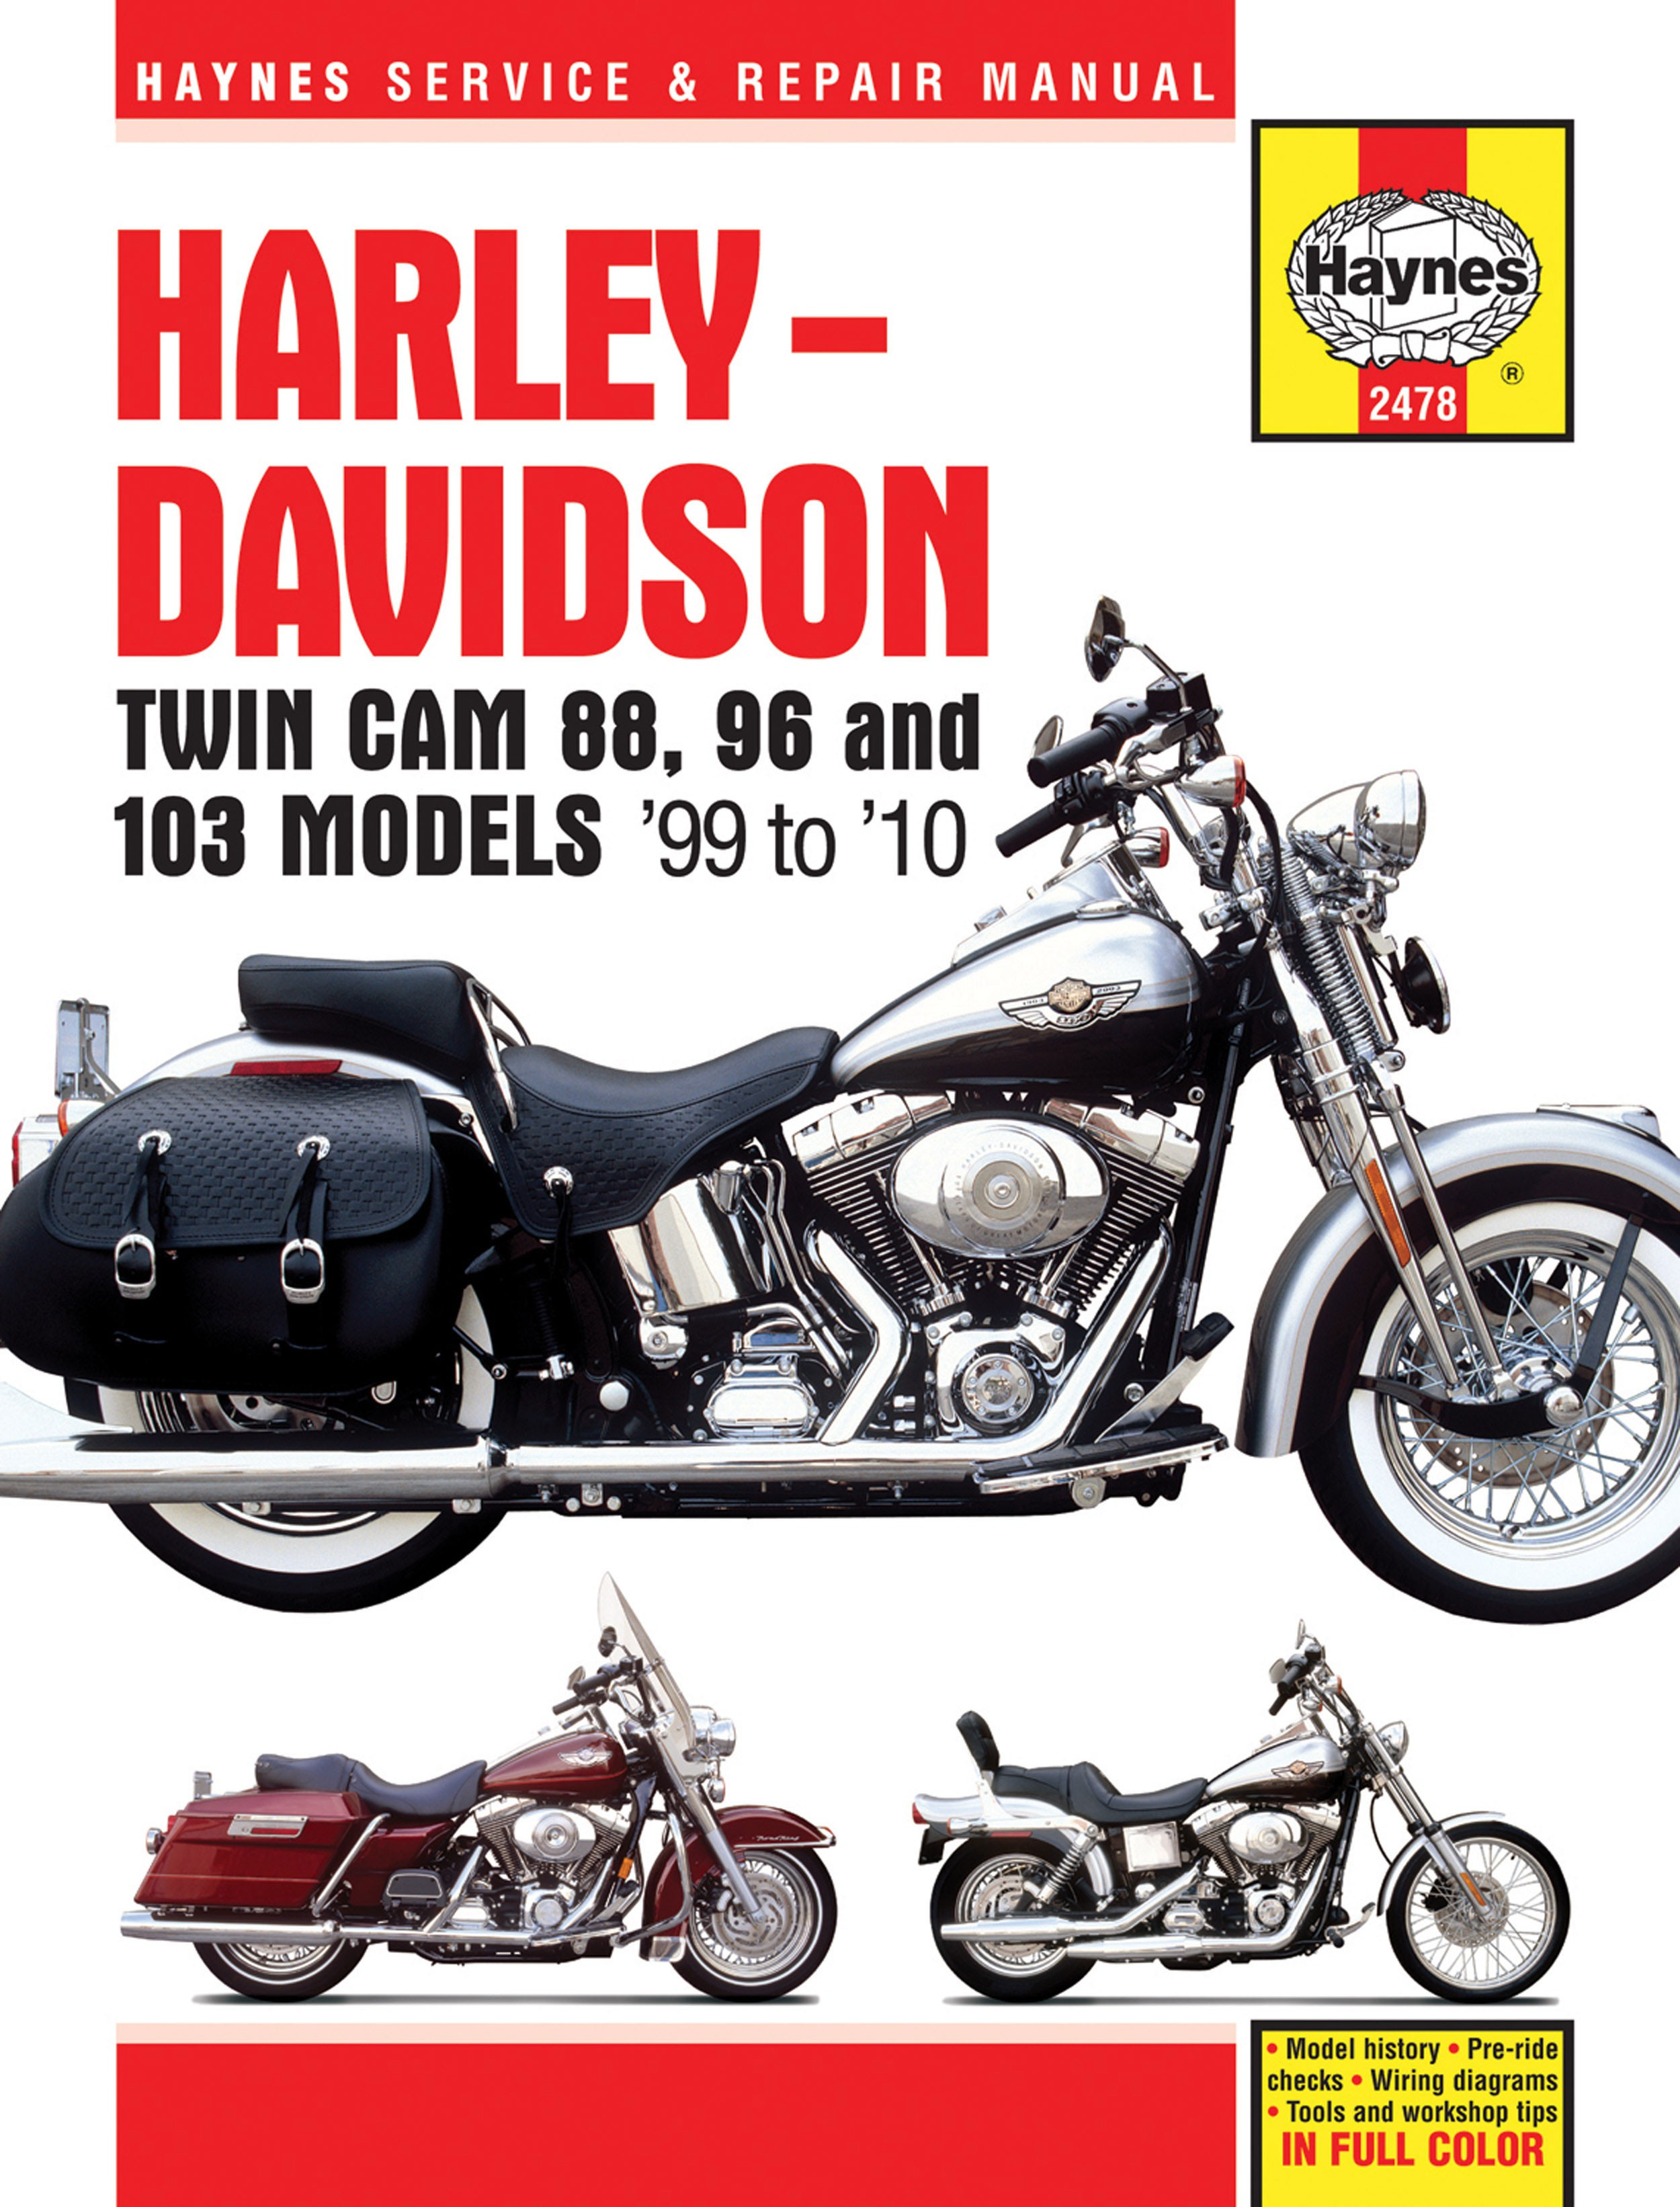 HAYNES Repair Manual - Harley-Davidson Twin Cam 88 Softail (2000-2010),  Dyna Glide (1999-2010), and Electra Glide/Road King ...